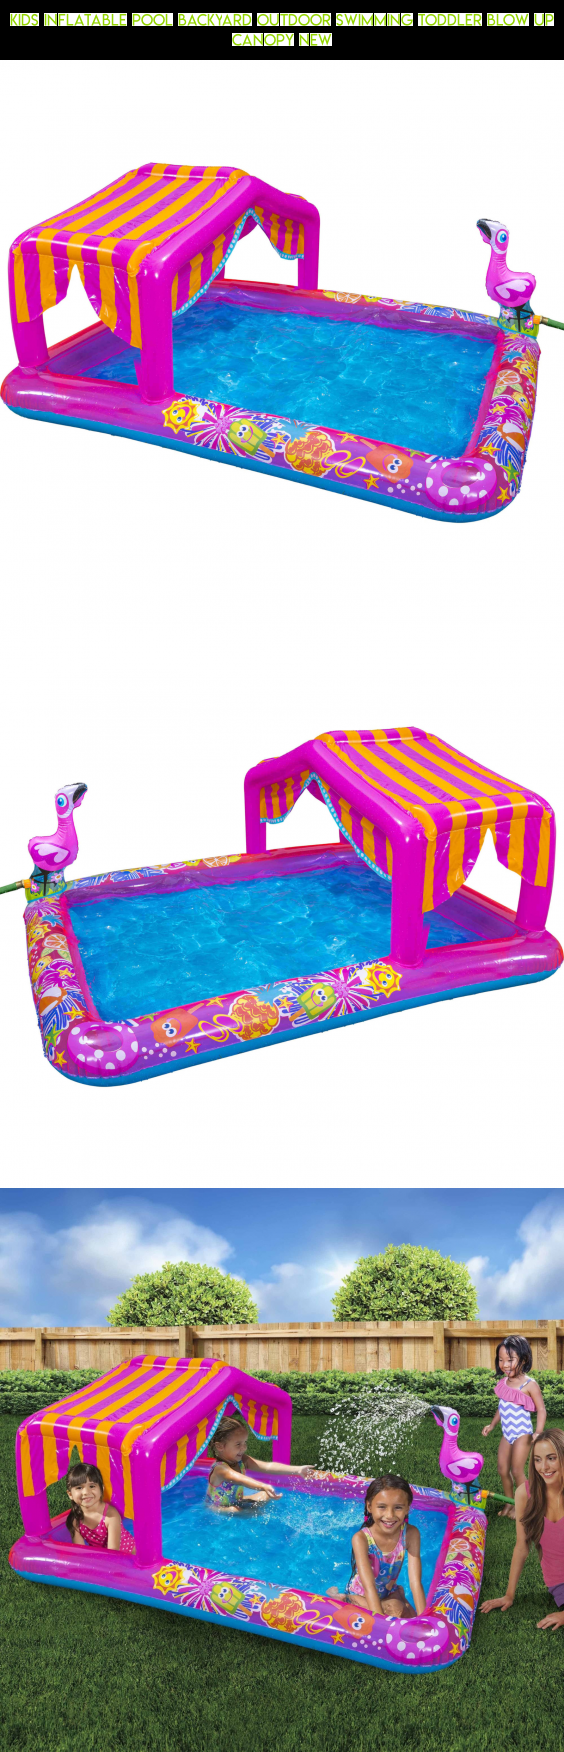 Kids Inflatable Pool Backyard Outdoor Swimming Toddler Blow Up Canopy NEW #tech #gadgets # & Kids Inflatable Pool Backyard Outdoor Swimming Toddler Blow Up ...